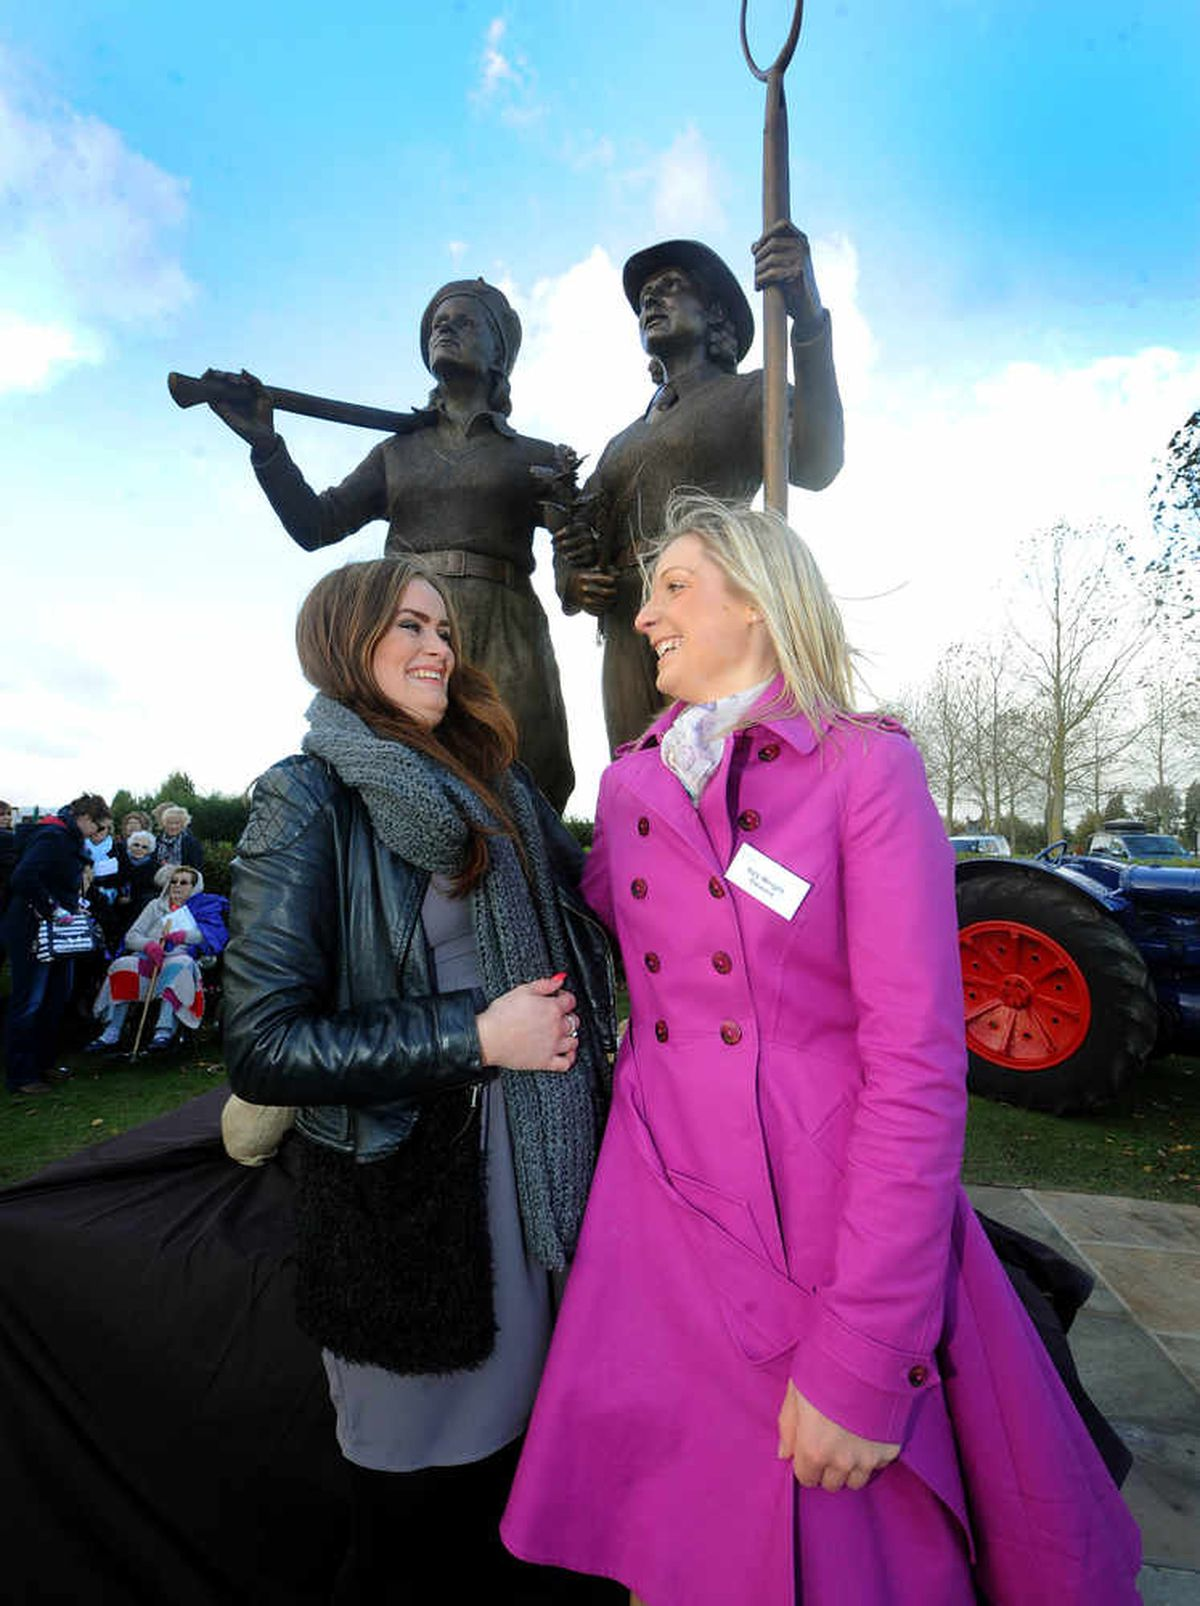 Sarah Martin and Izzy Wright from Stafford, who posed for the statue.